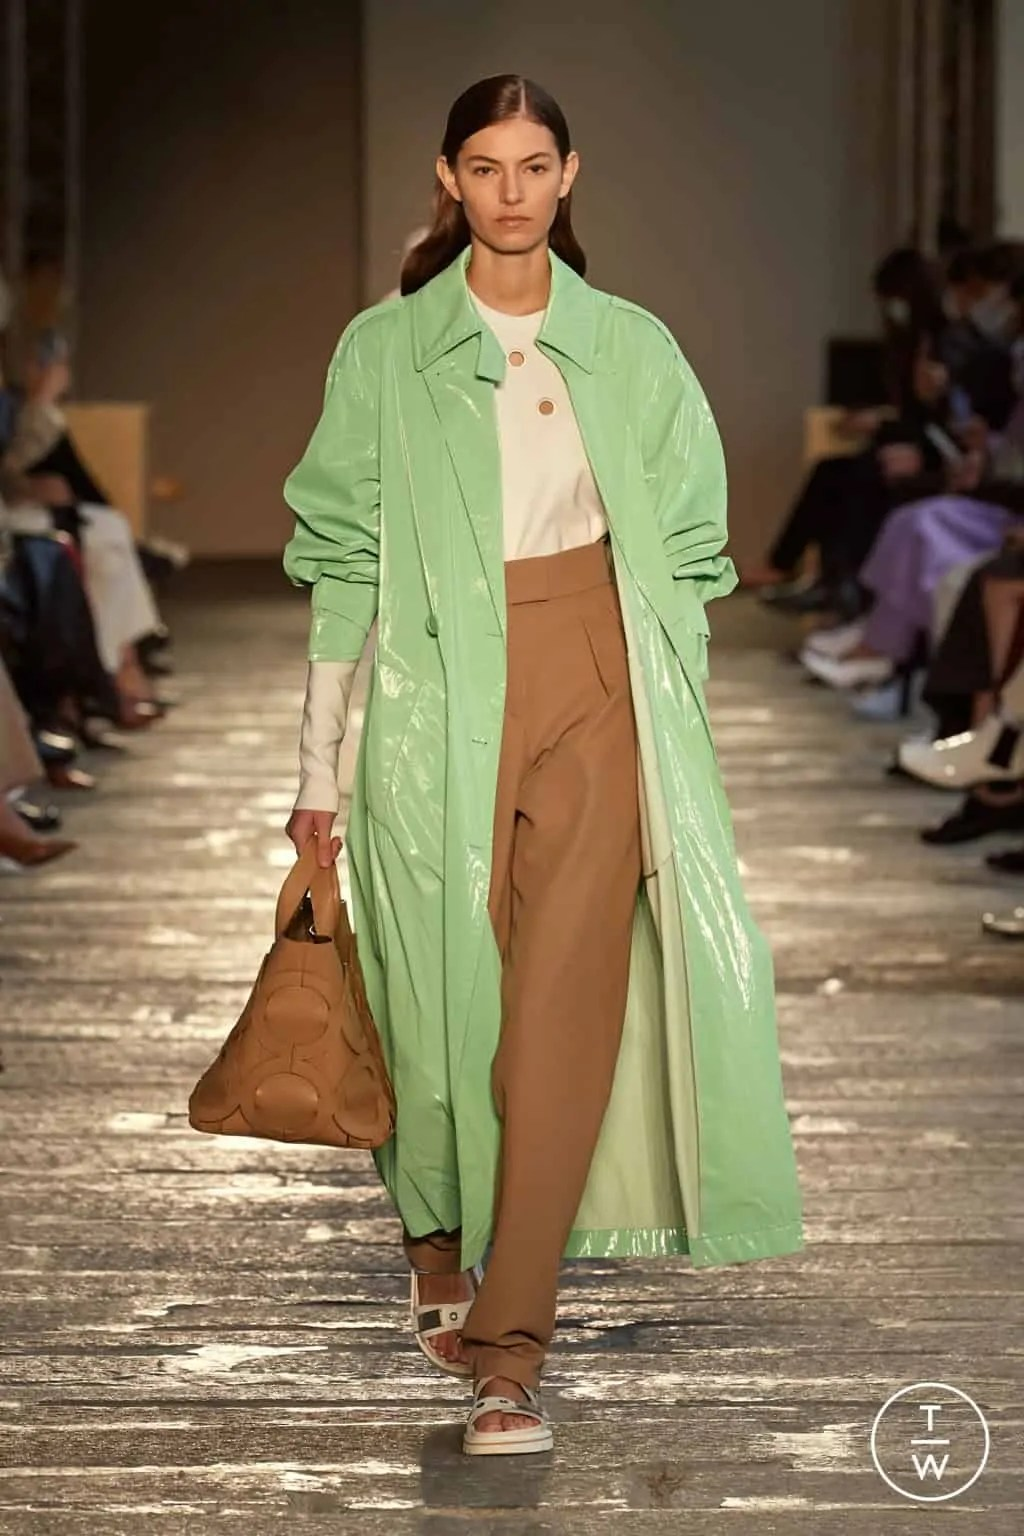 25 Biggest Spring / Summer 2021 Fashion Trends - Womenswear 227